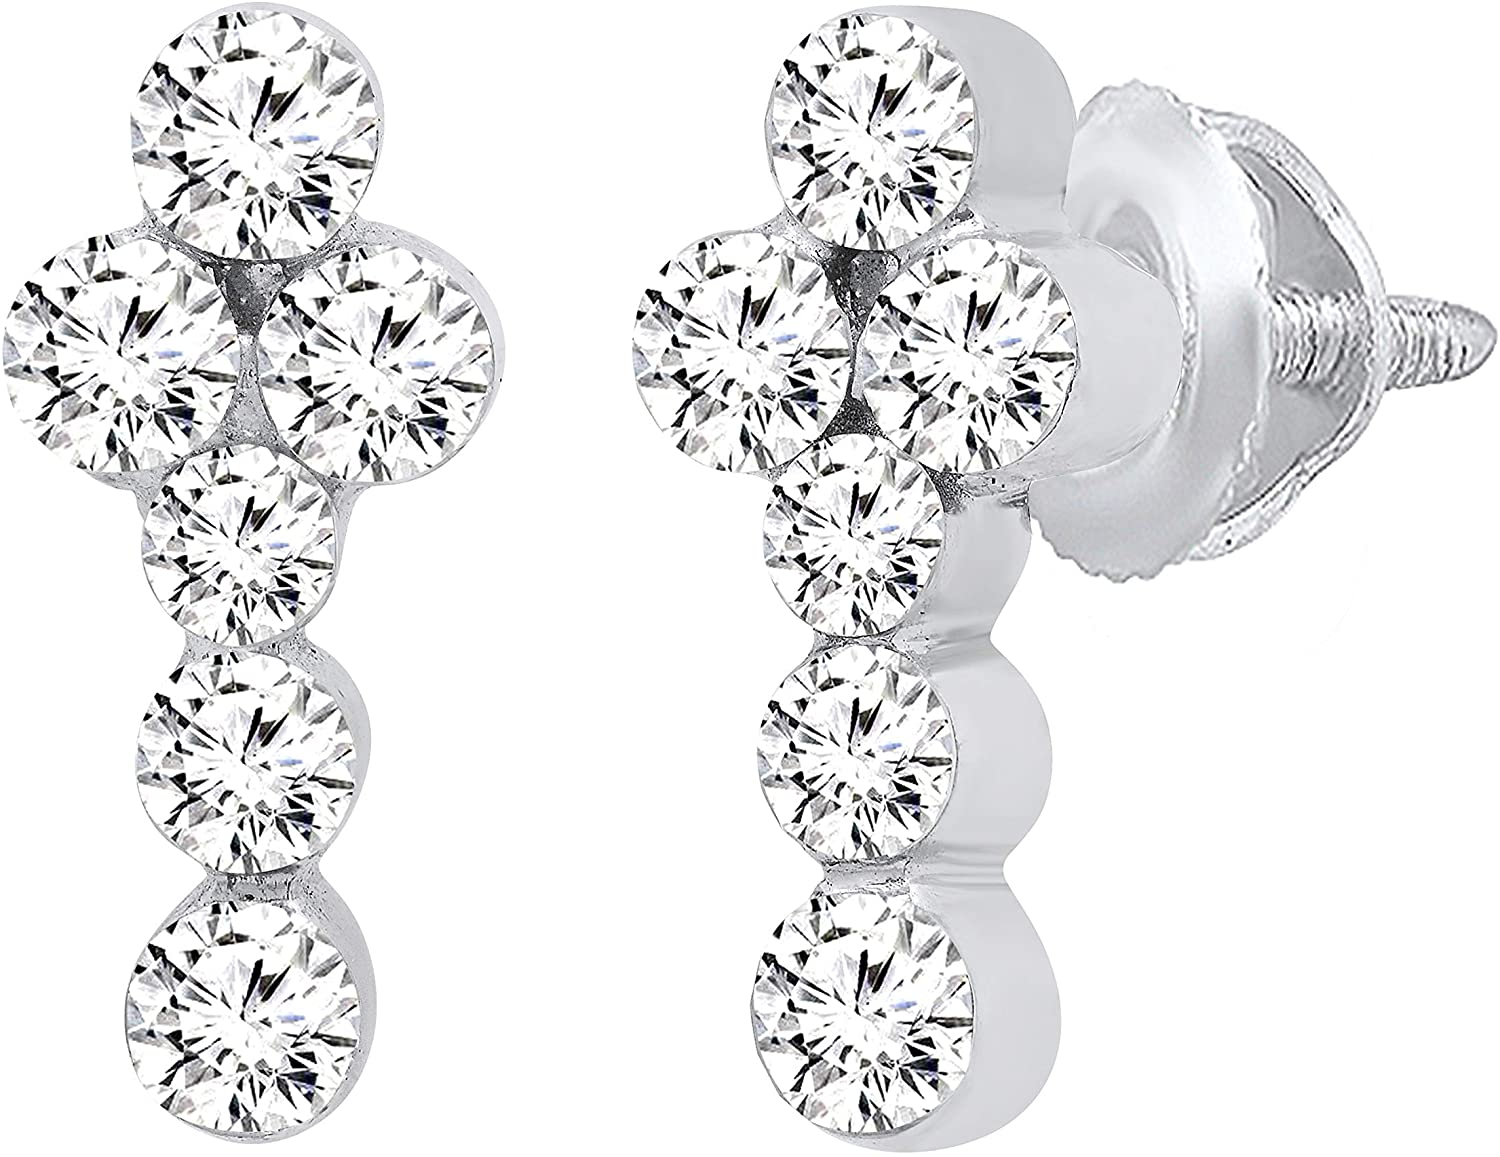 Dazzlingrock Collection 1.14 Carat (ctw) Round White Diamond Ladies Prong Set Cross Stud Earrings, Available in 10K/14K/18K Gold